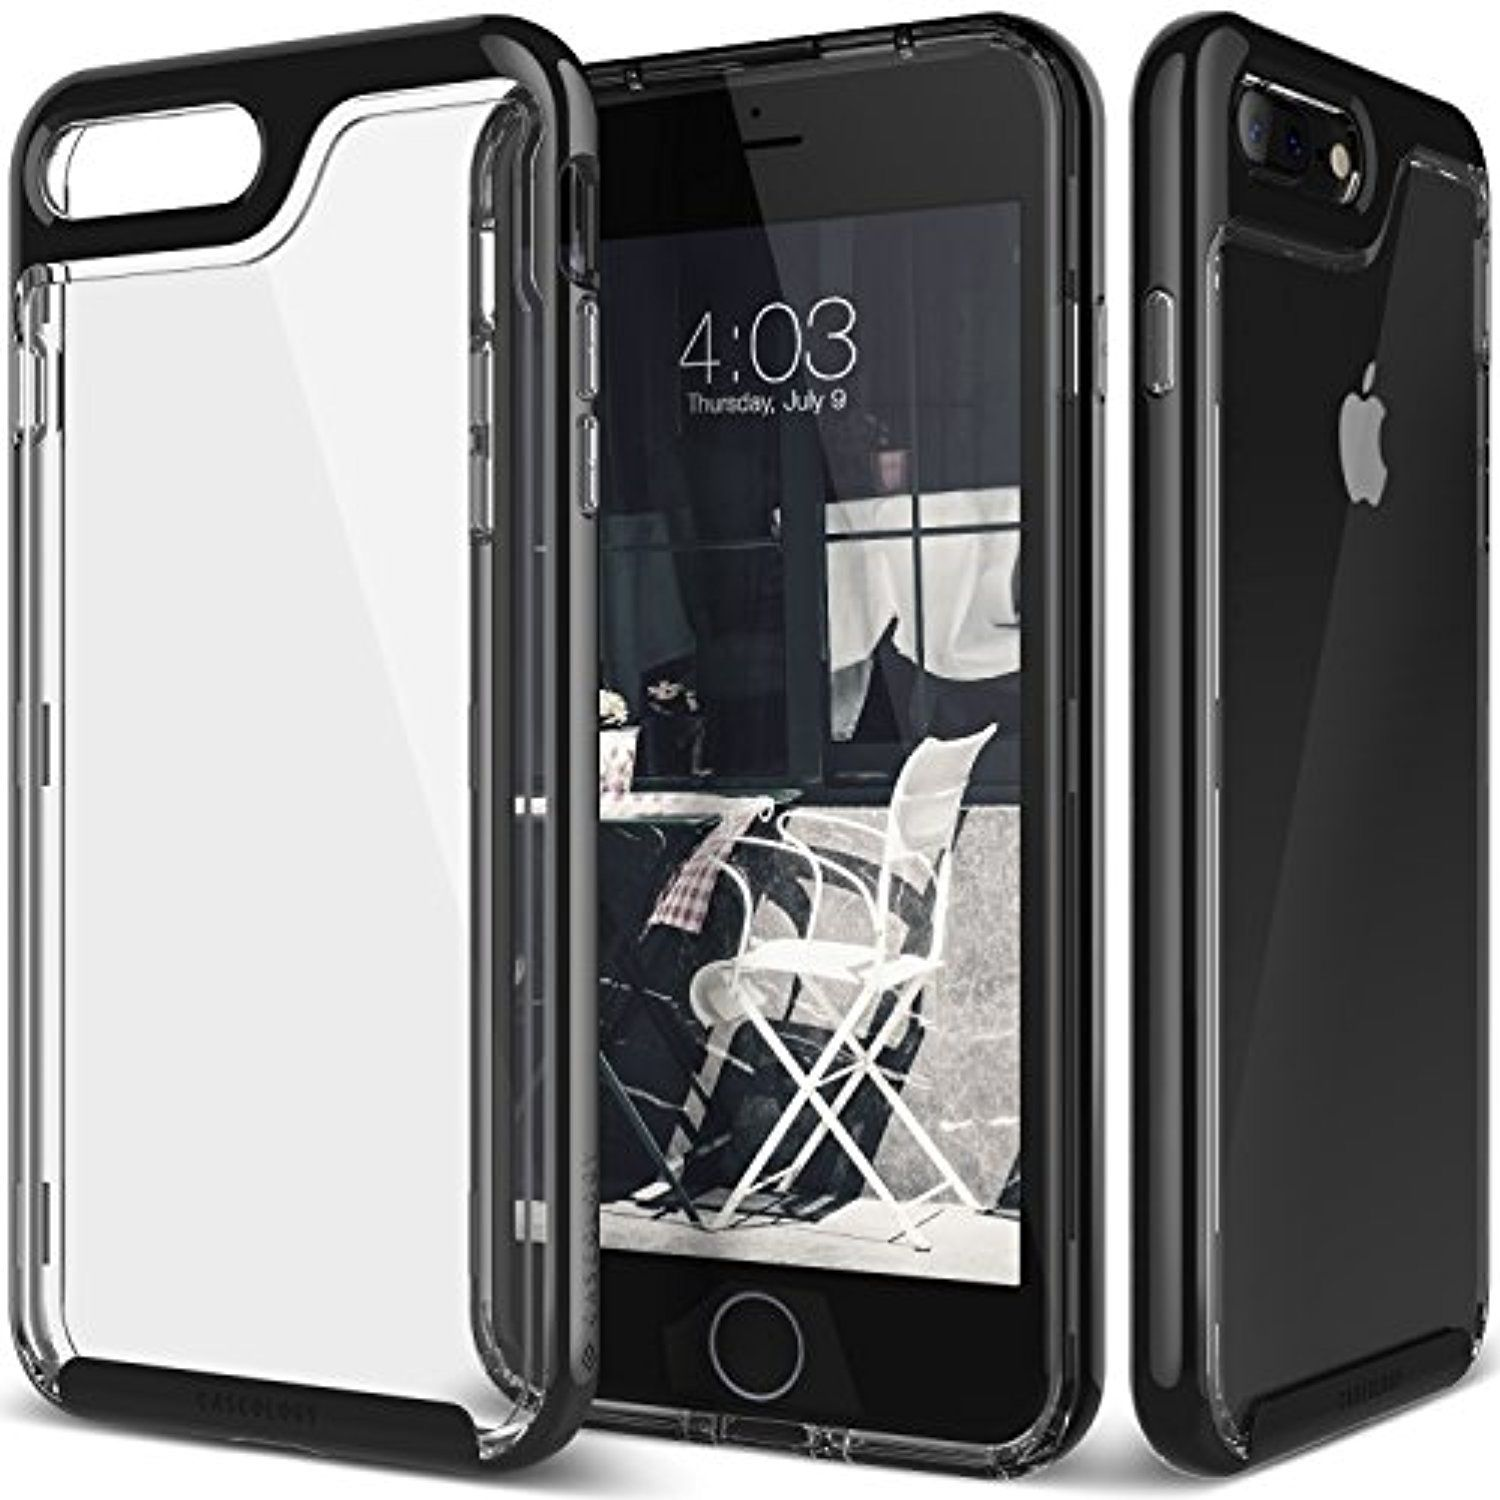 Iphone 7 Plus Case Caseology Skyfall Series Transparent Clear Enhanced Grip Jet Black Slim Cushion For Ap Iphone 7 Plus Cases Iphone 7 Plus Apple Iphone